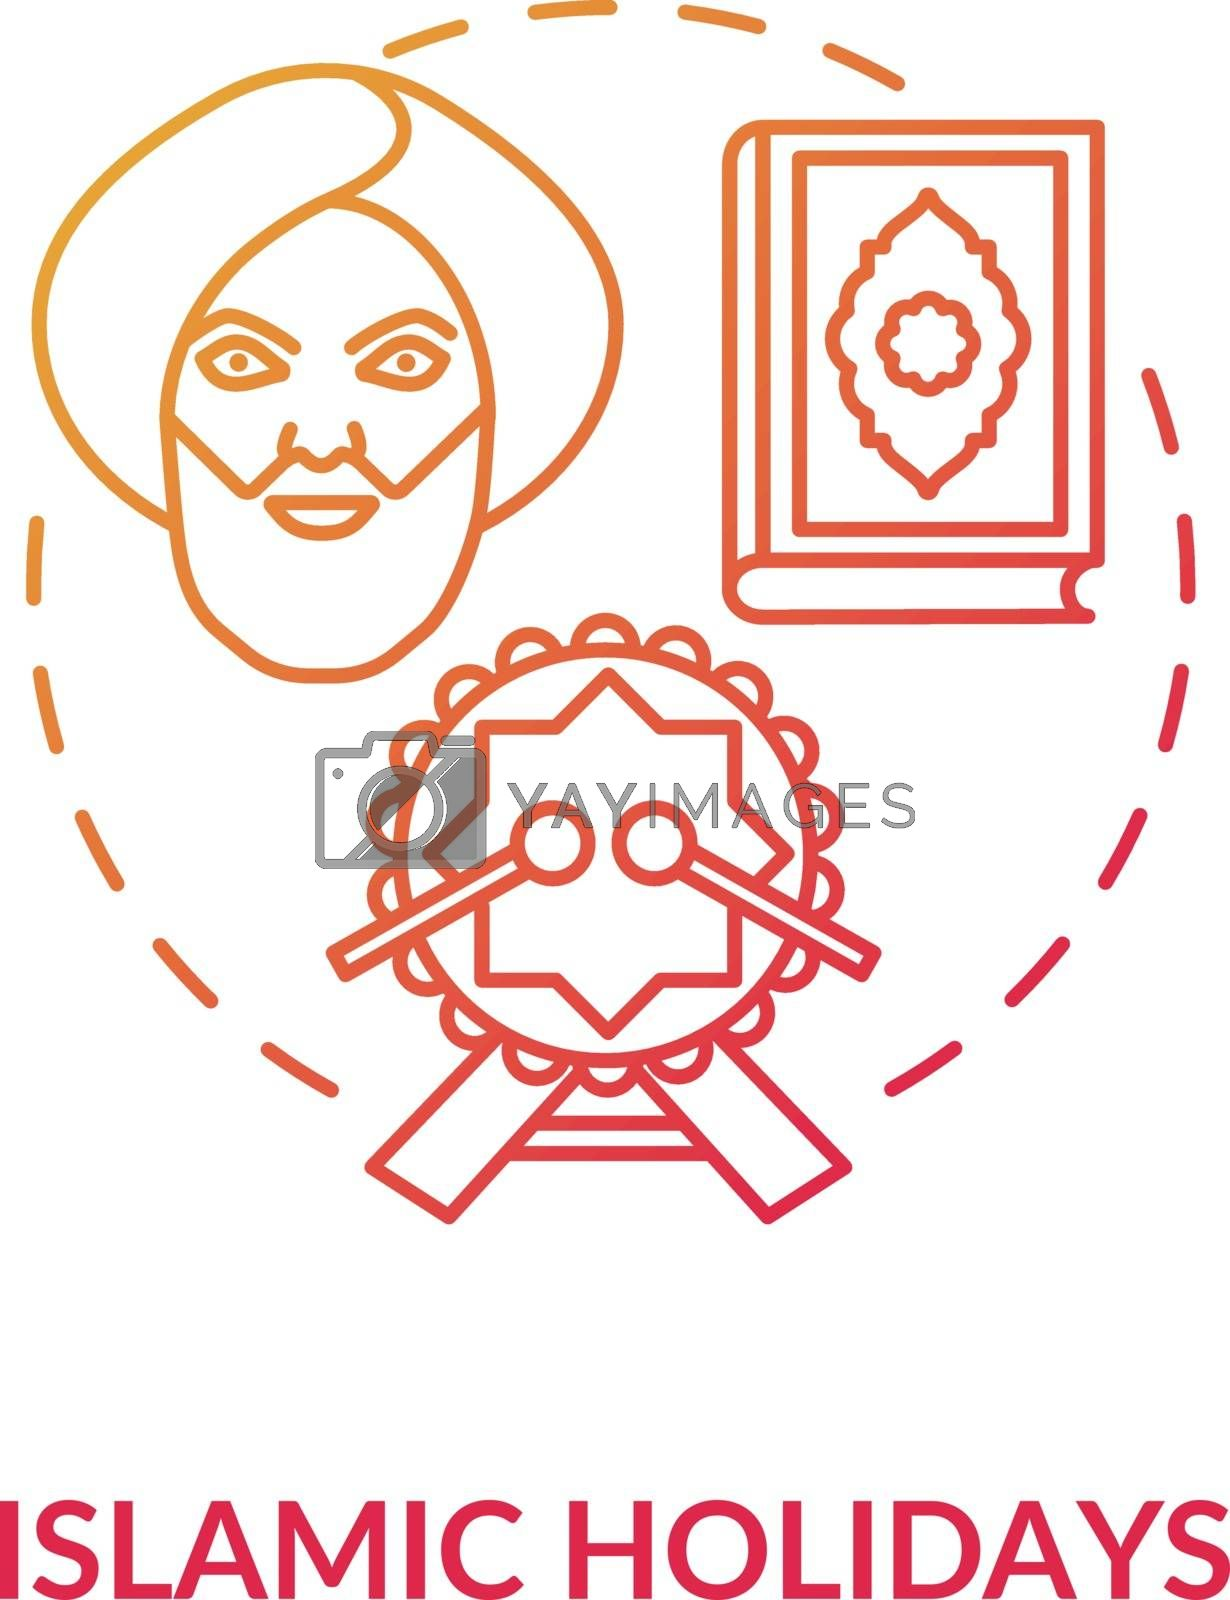 Islamic holidays concept icon. Religious celebrations in India, islam idea thin line illustration. Prophet muhammad, quran and festive drum vector isolated outline RGB color drawing